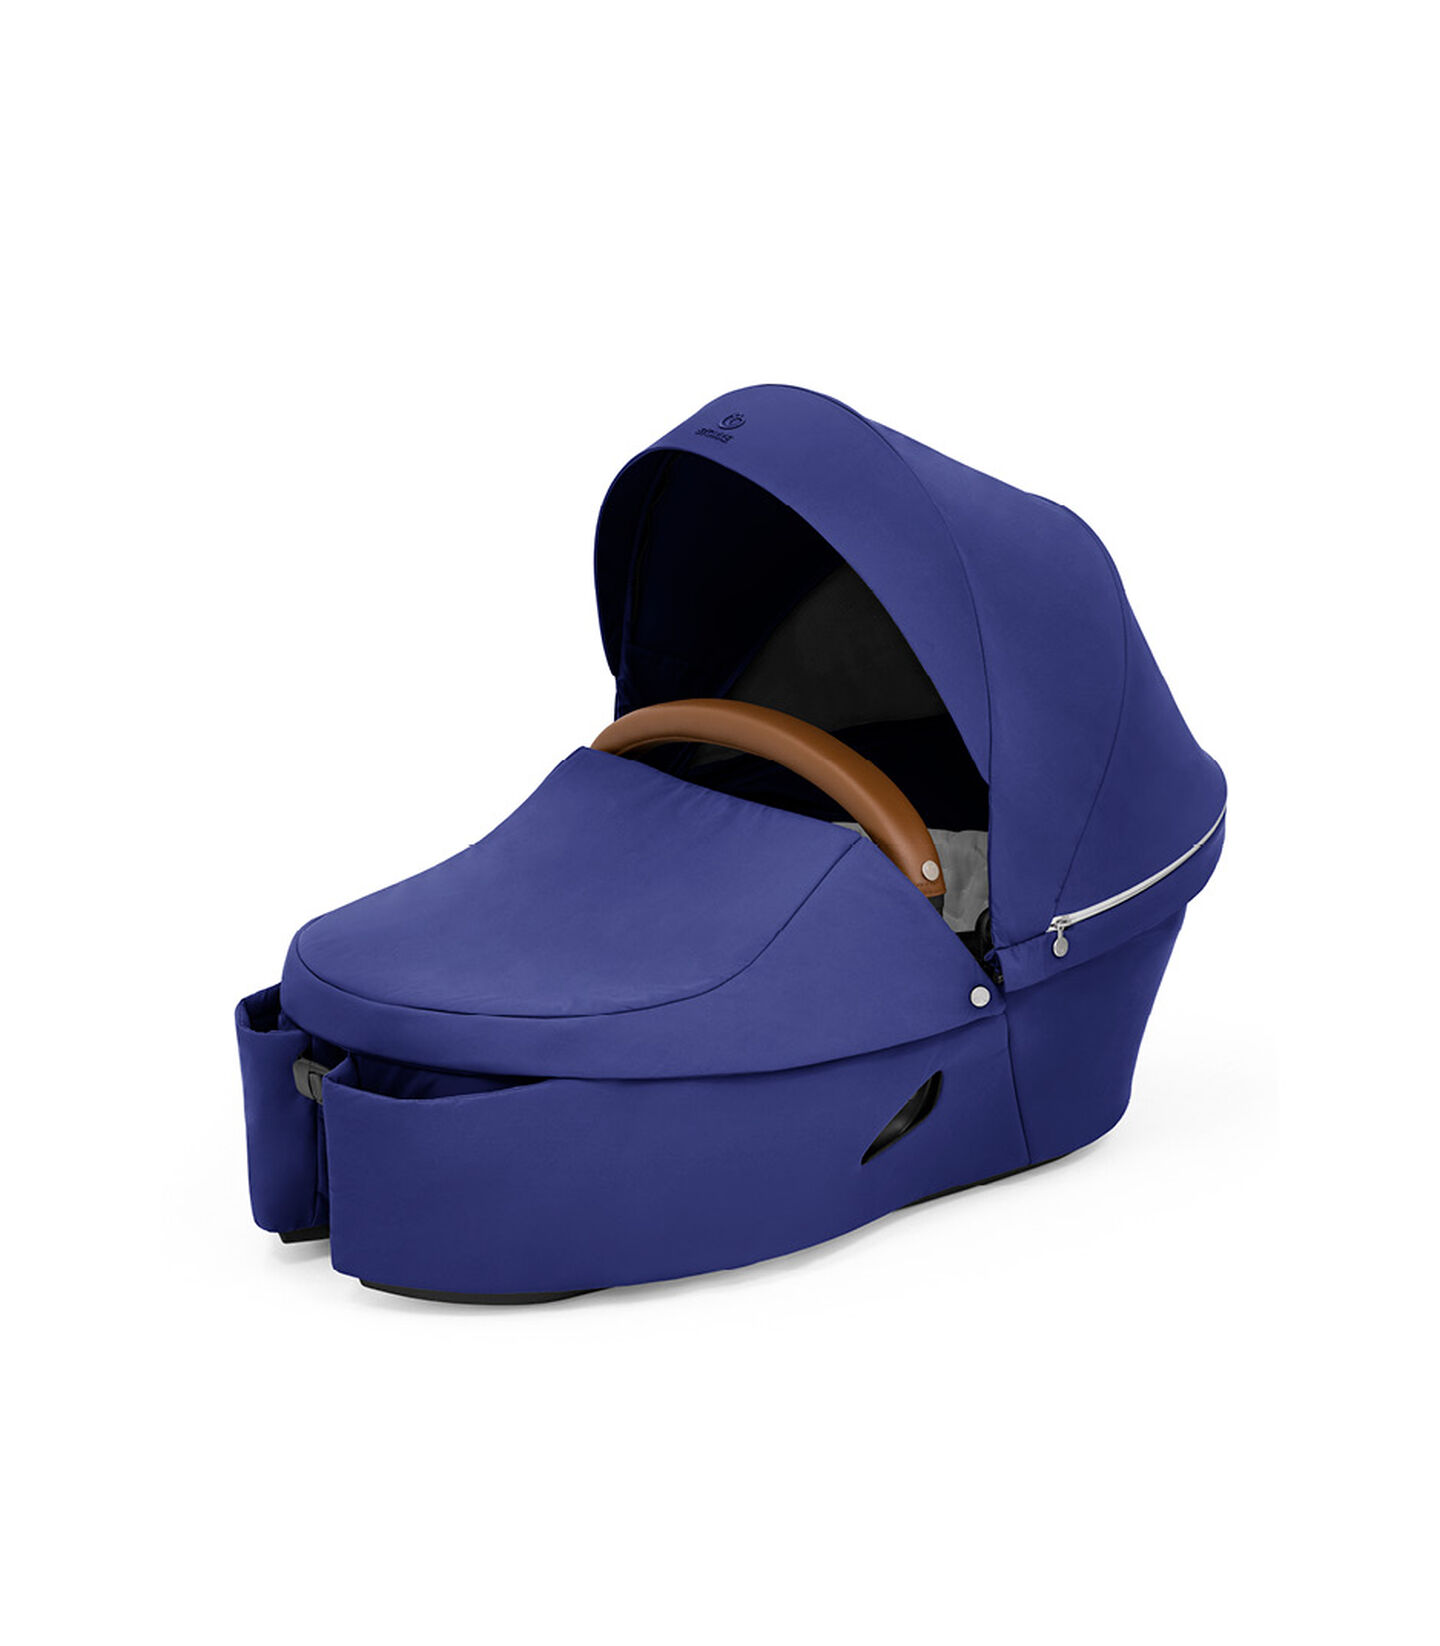 Stokke® Xplory® X Carry Cot Royal Blue, Royal Blue, mainview view 2